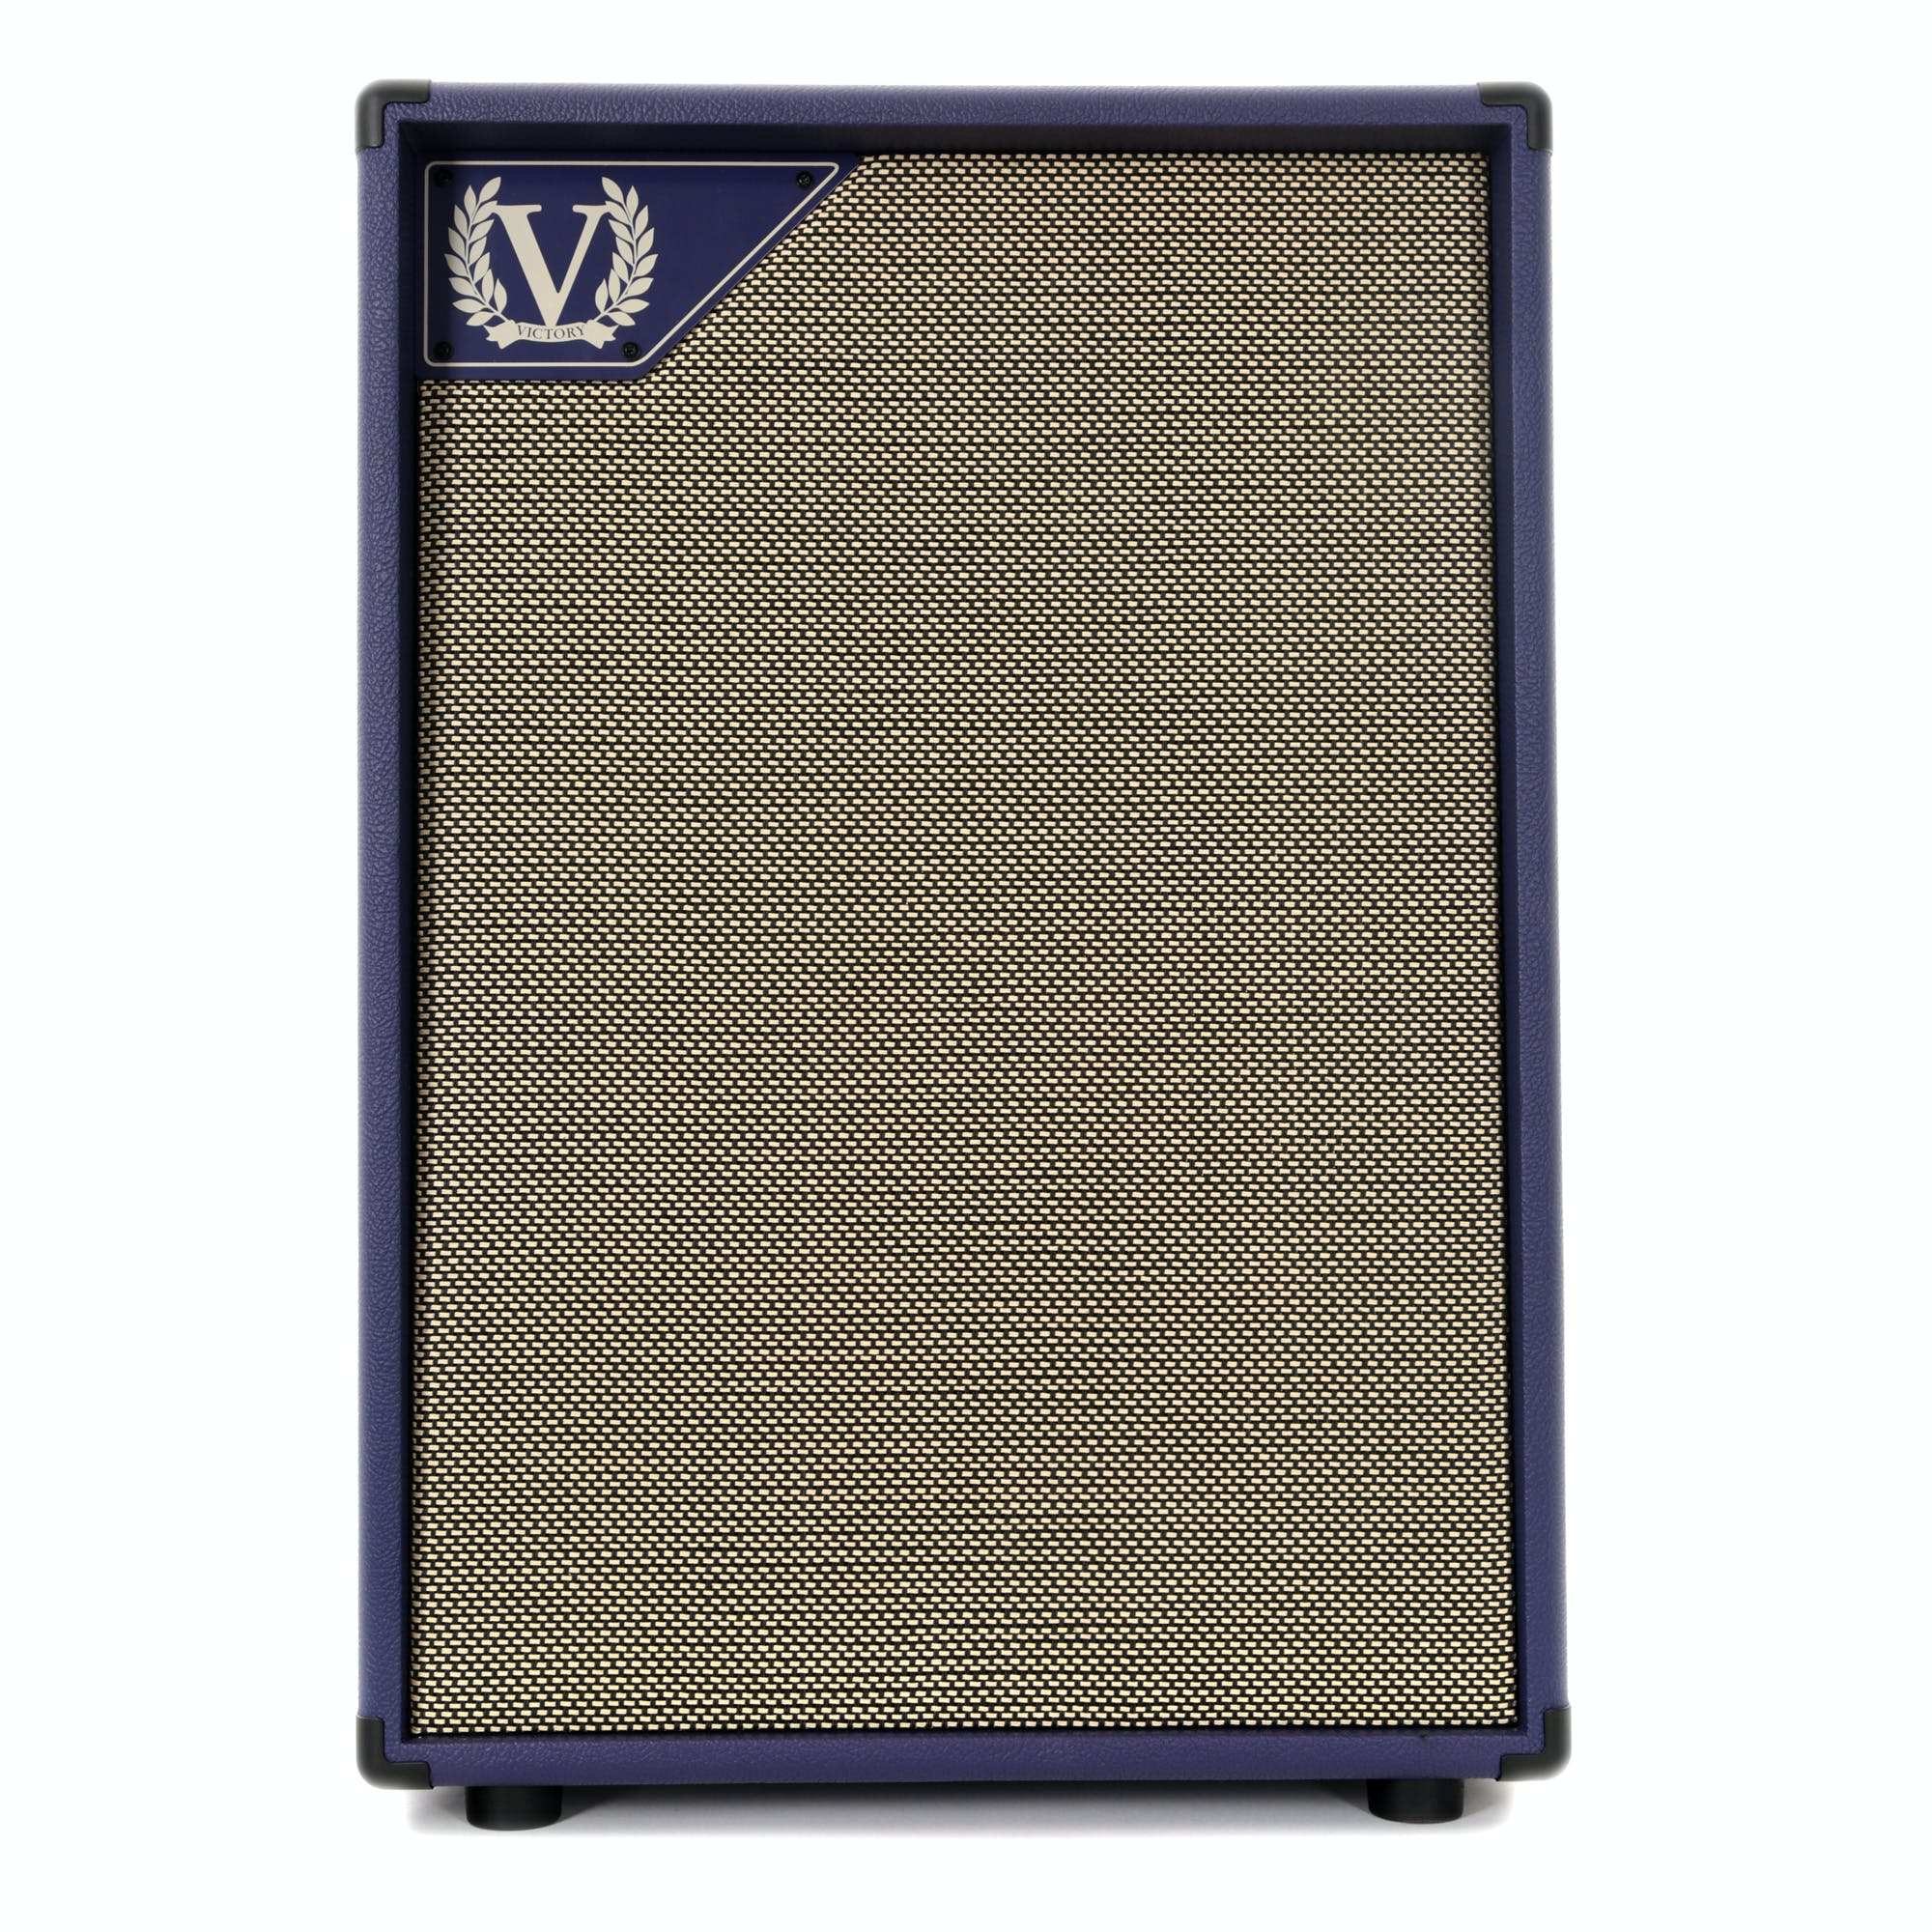 Victory Andertons Amplifiers Victory Victory Co Amplifiers Co Music Andertons Andertons Music Amplifiers LqUMzVpSG